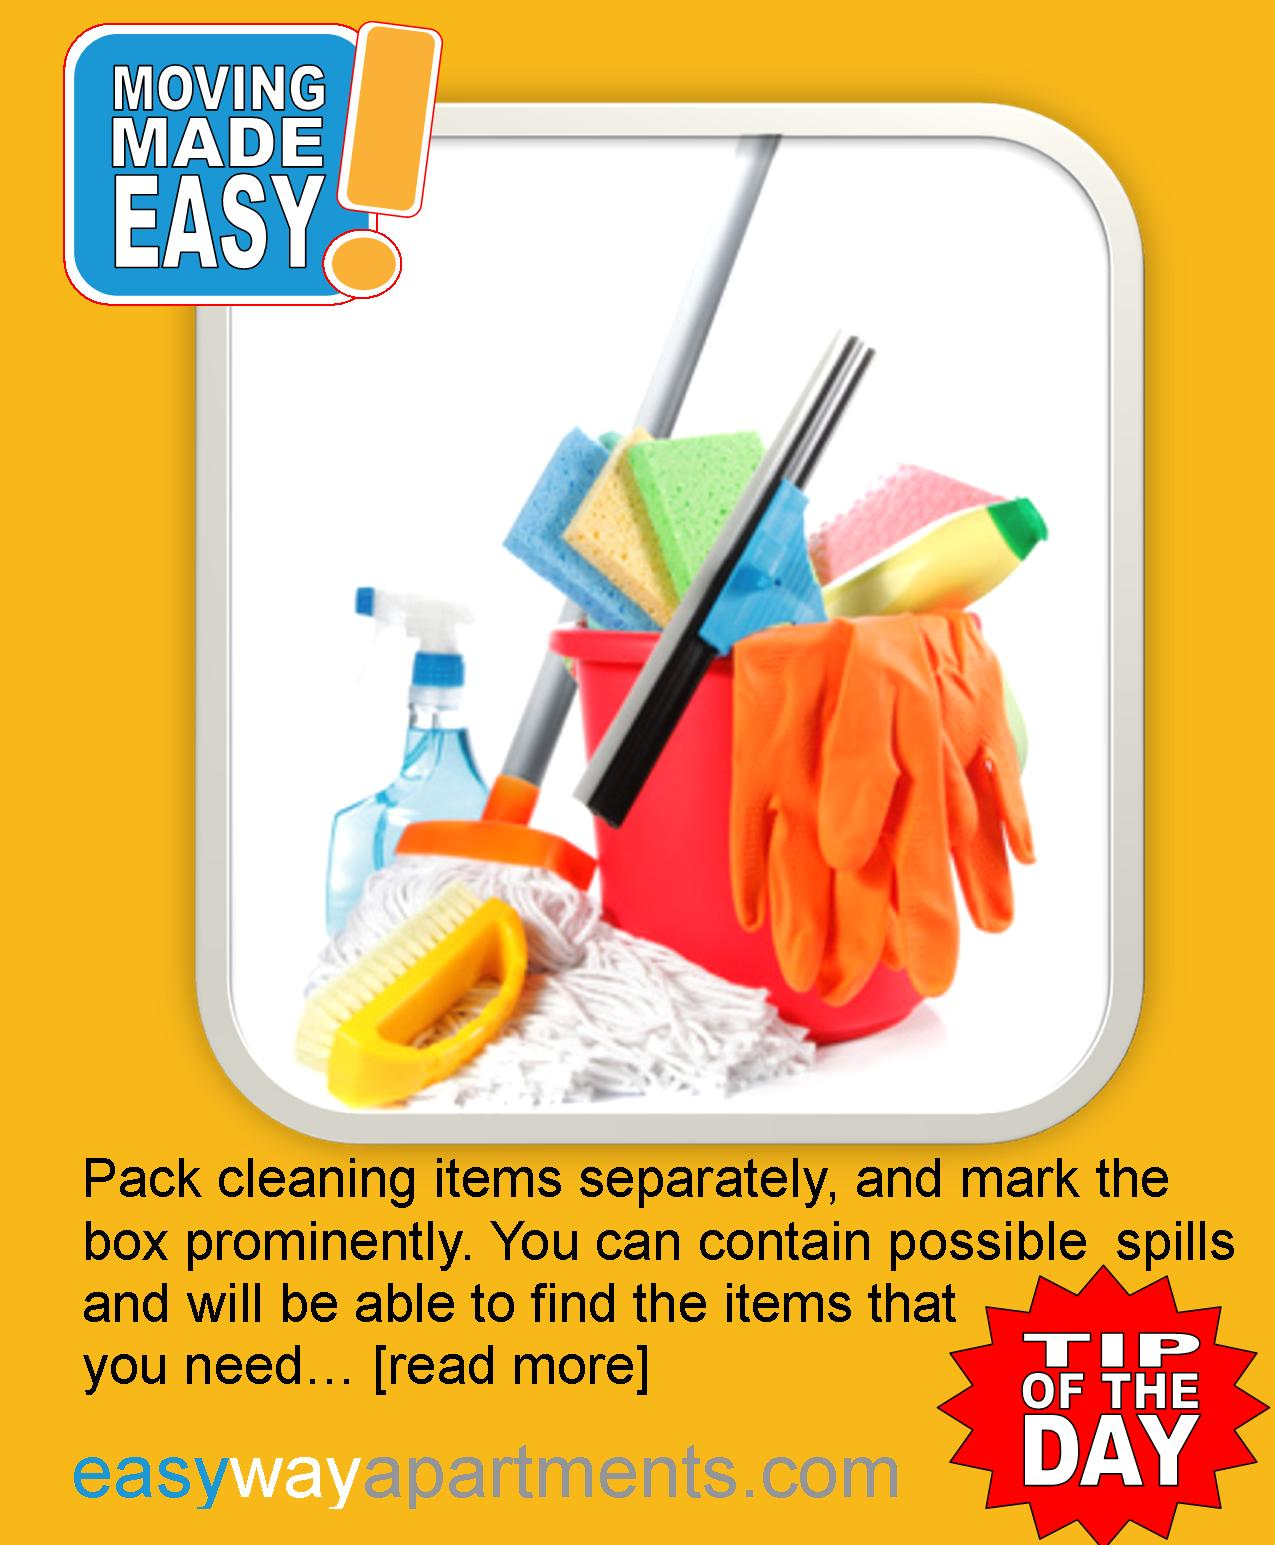 Pack cleaning items separately, and mark the box prominently| Tips for and #Easy #Move